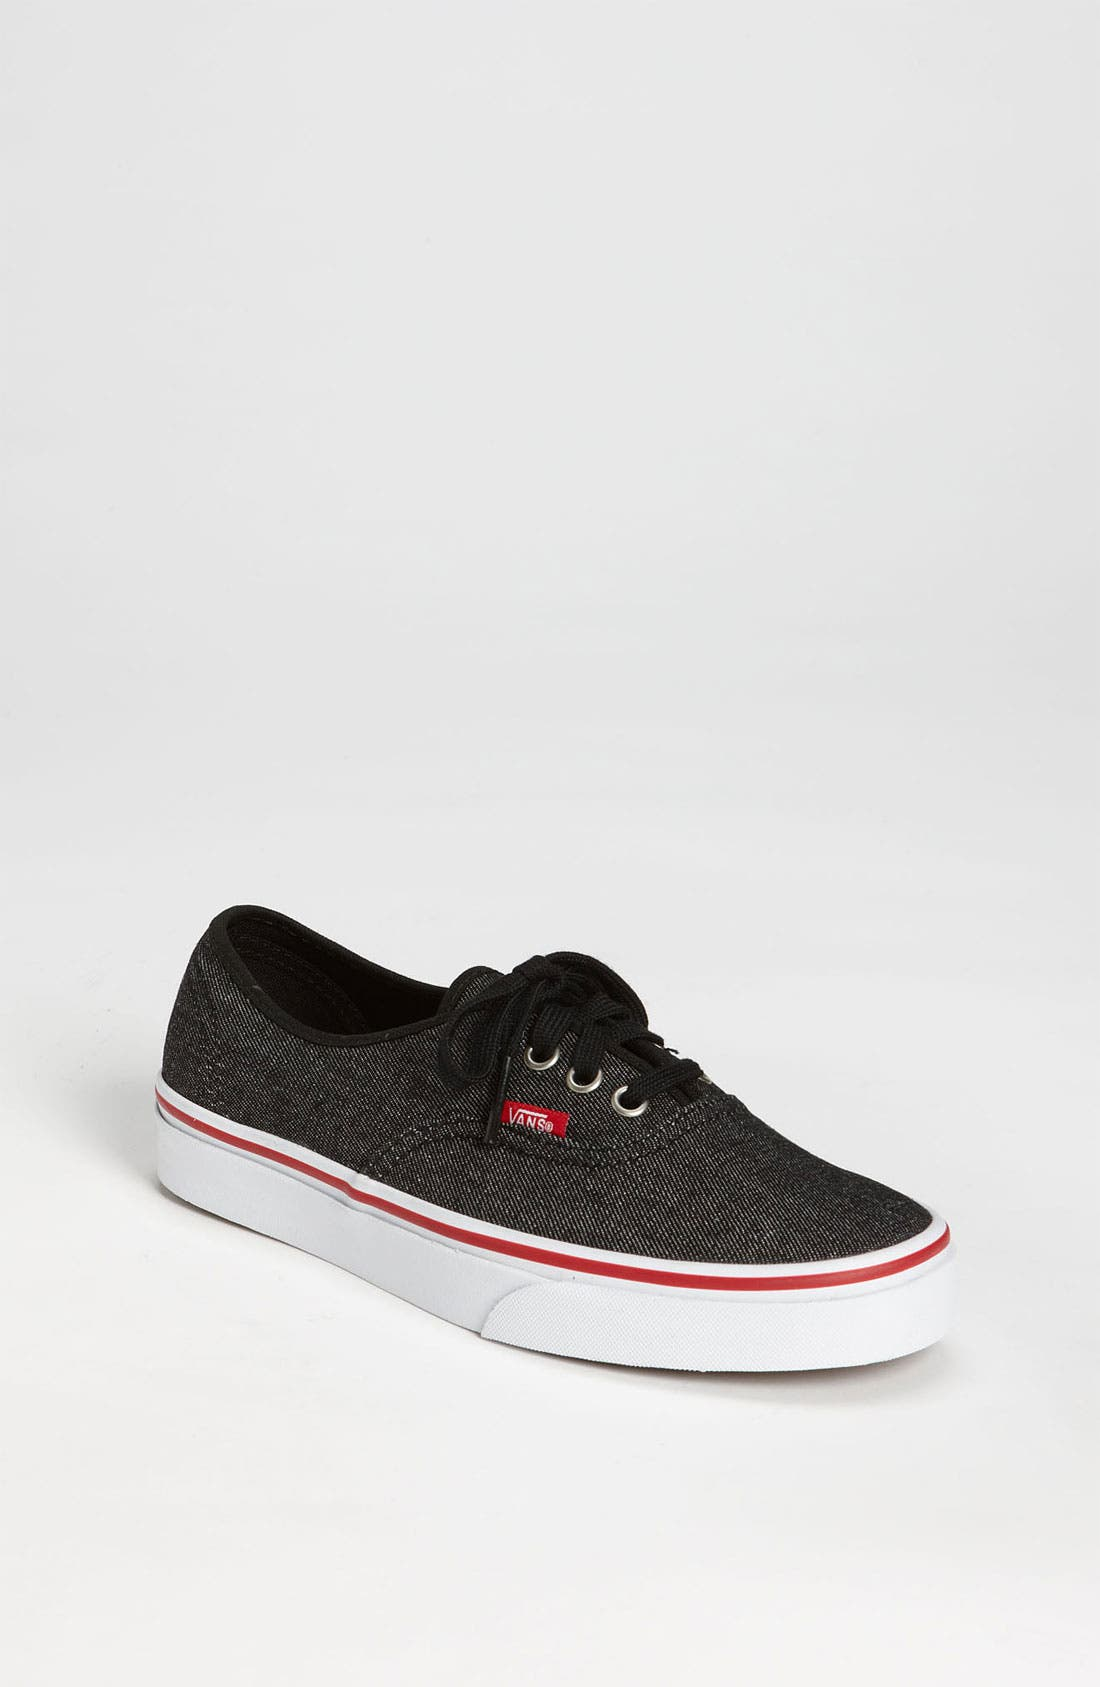 Main Image - VANS AUTHENTIC SNEAKER